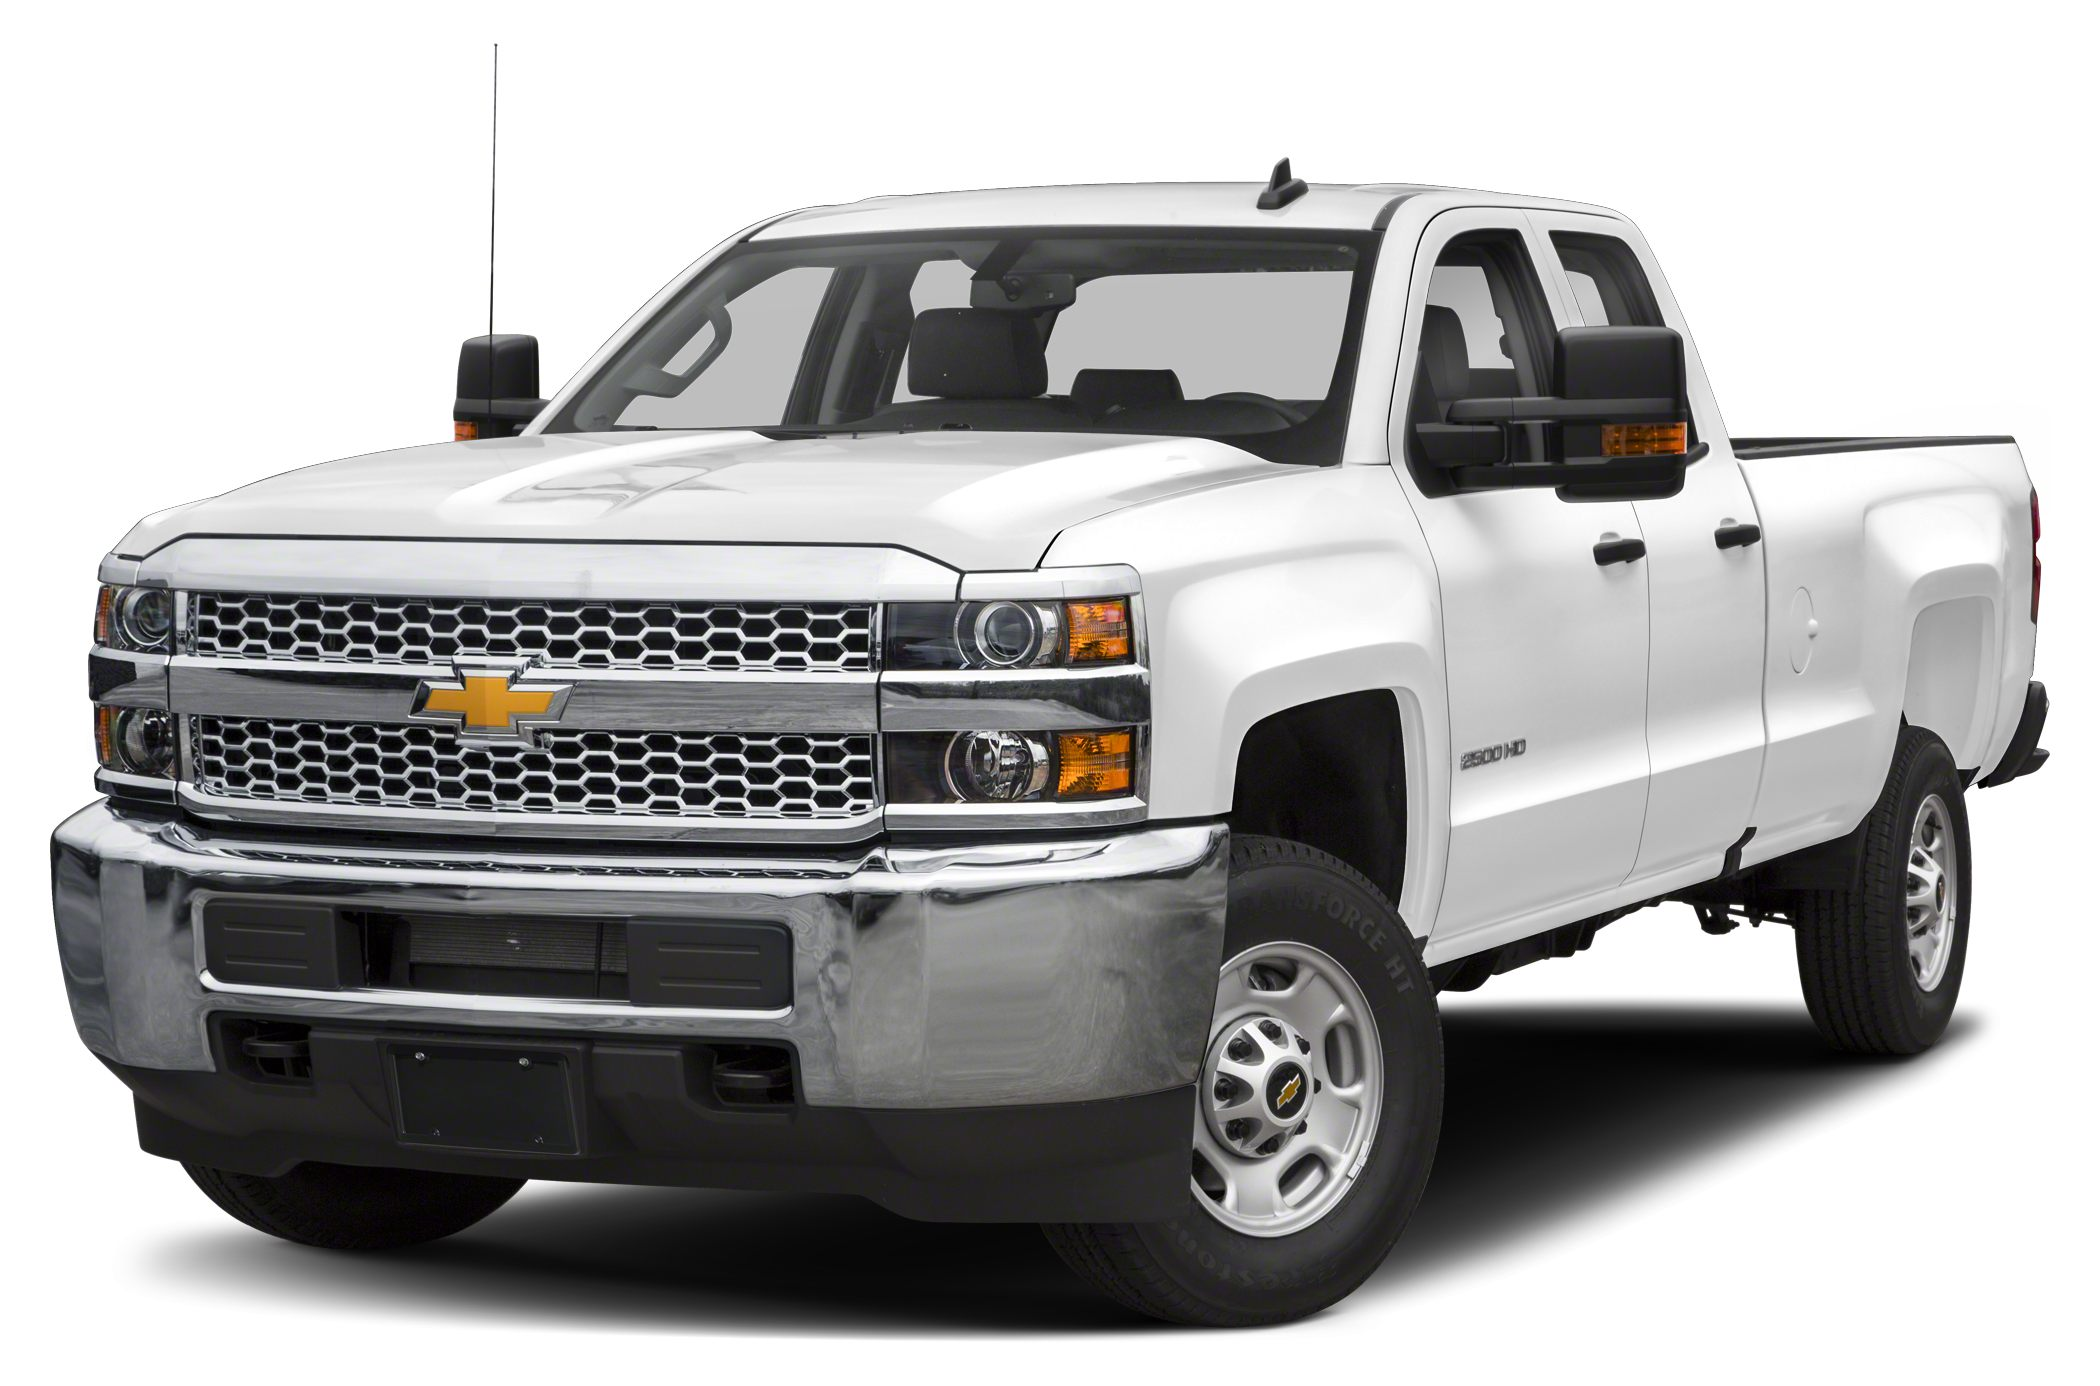 2020 Chevy Silverado Hd Reveals Its Big Angry Face Autoblog